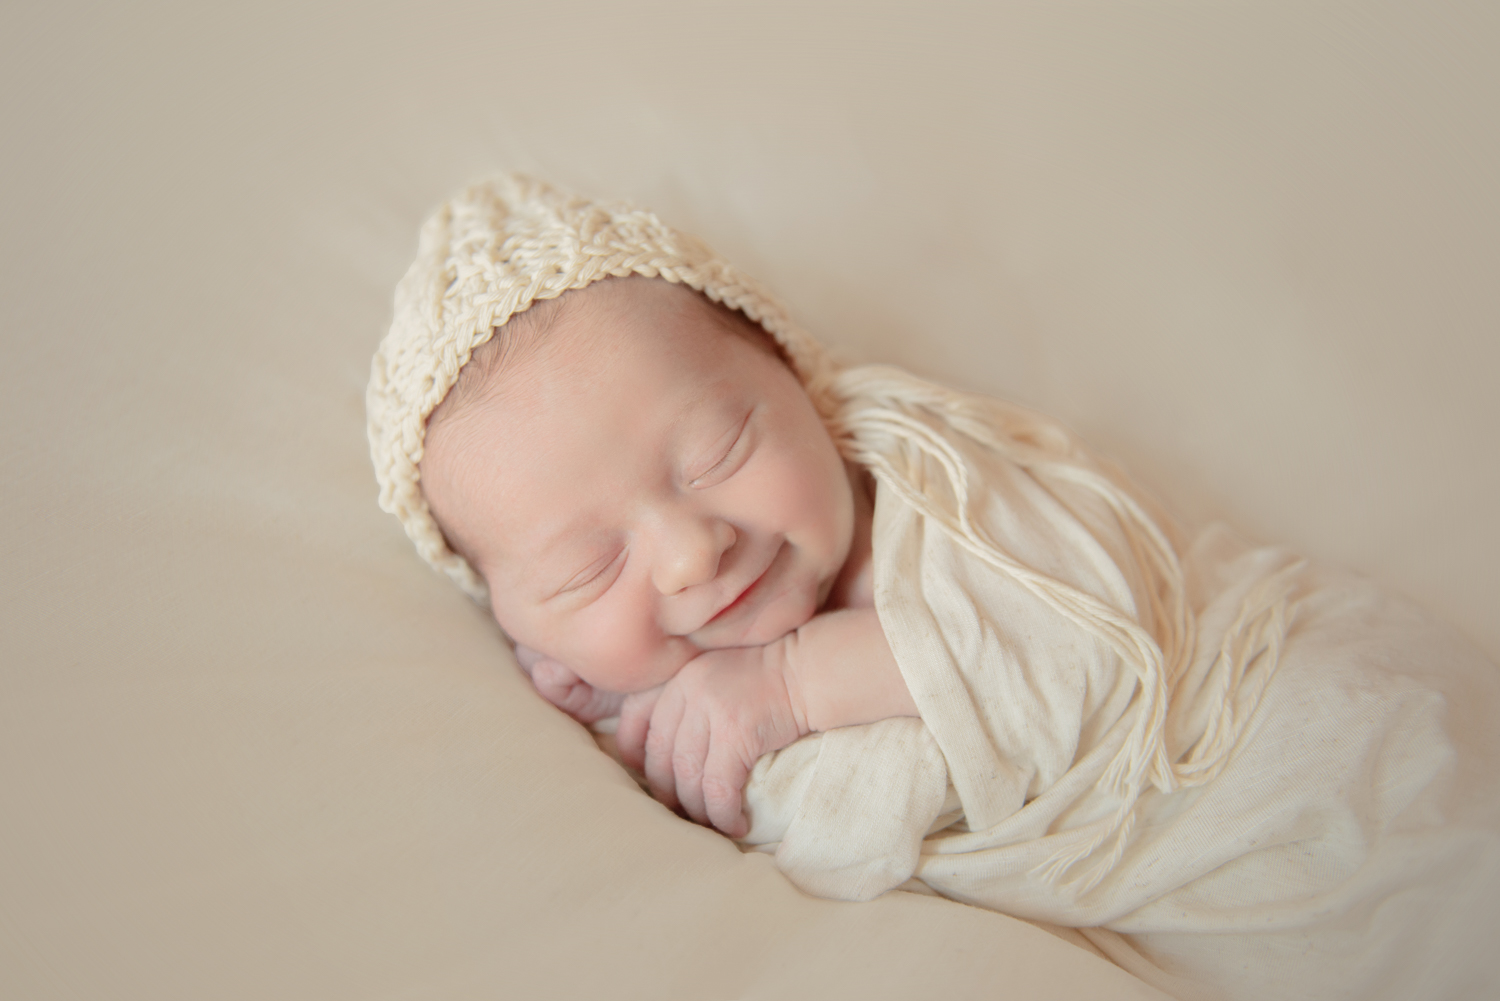 Copy of Newborn and Portrait Photography